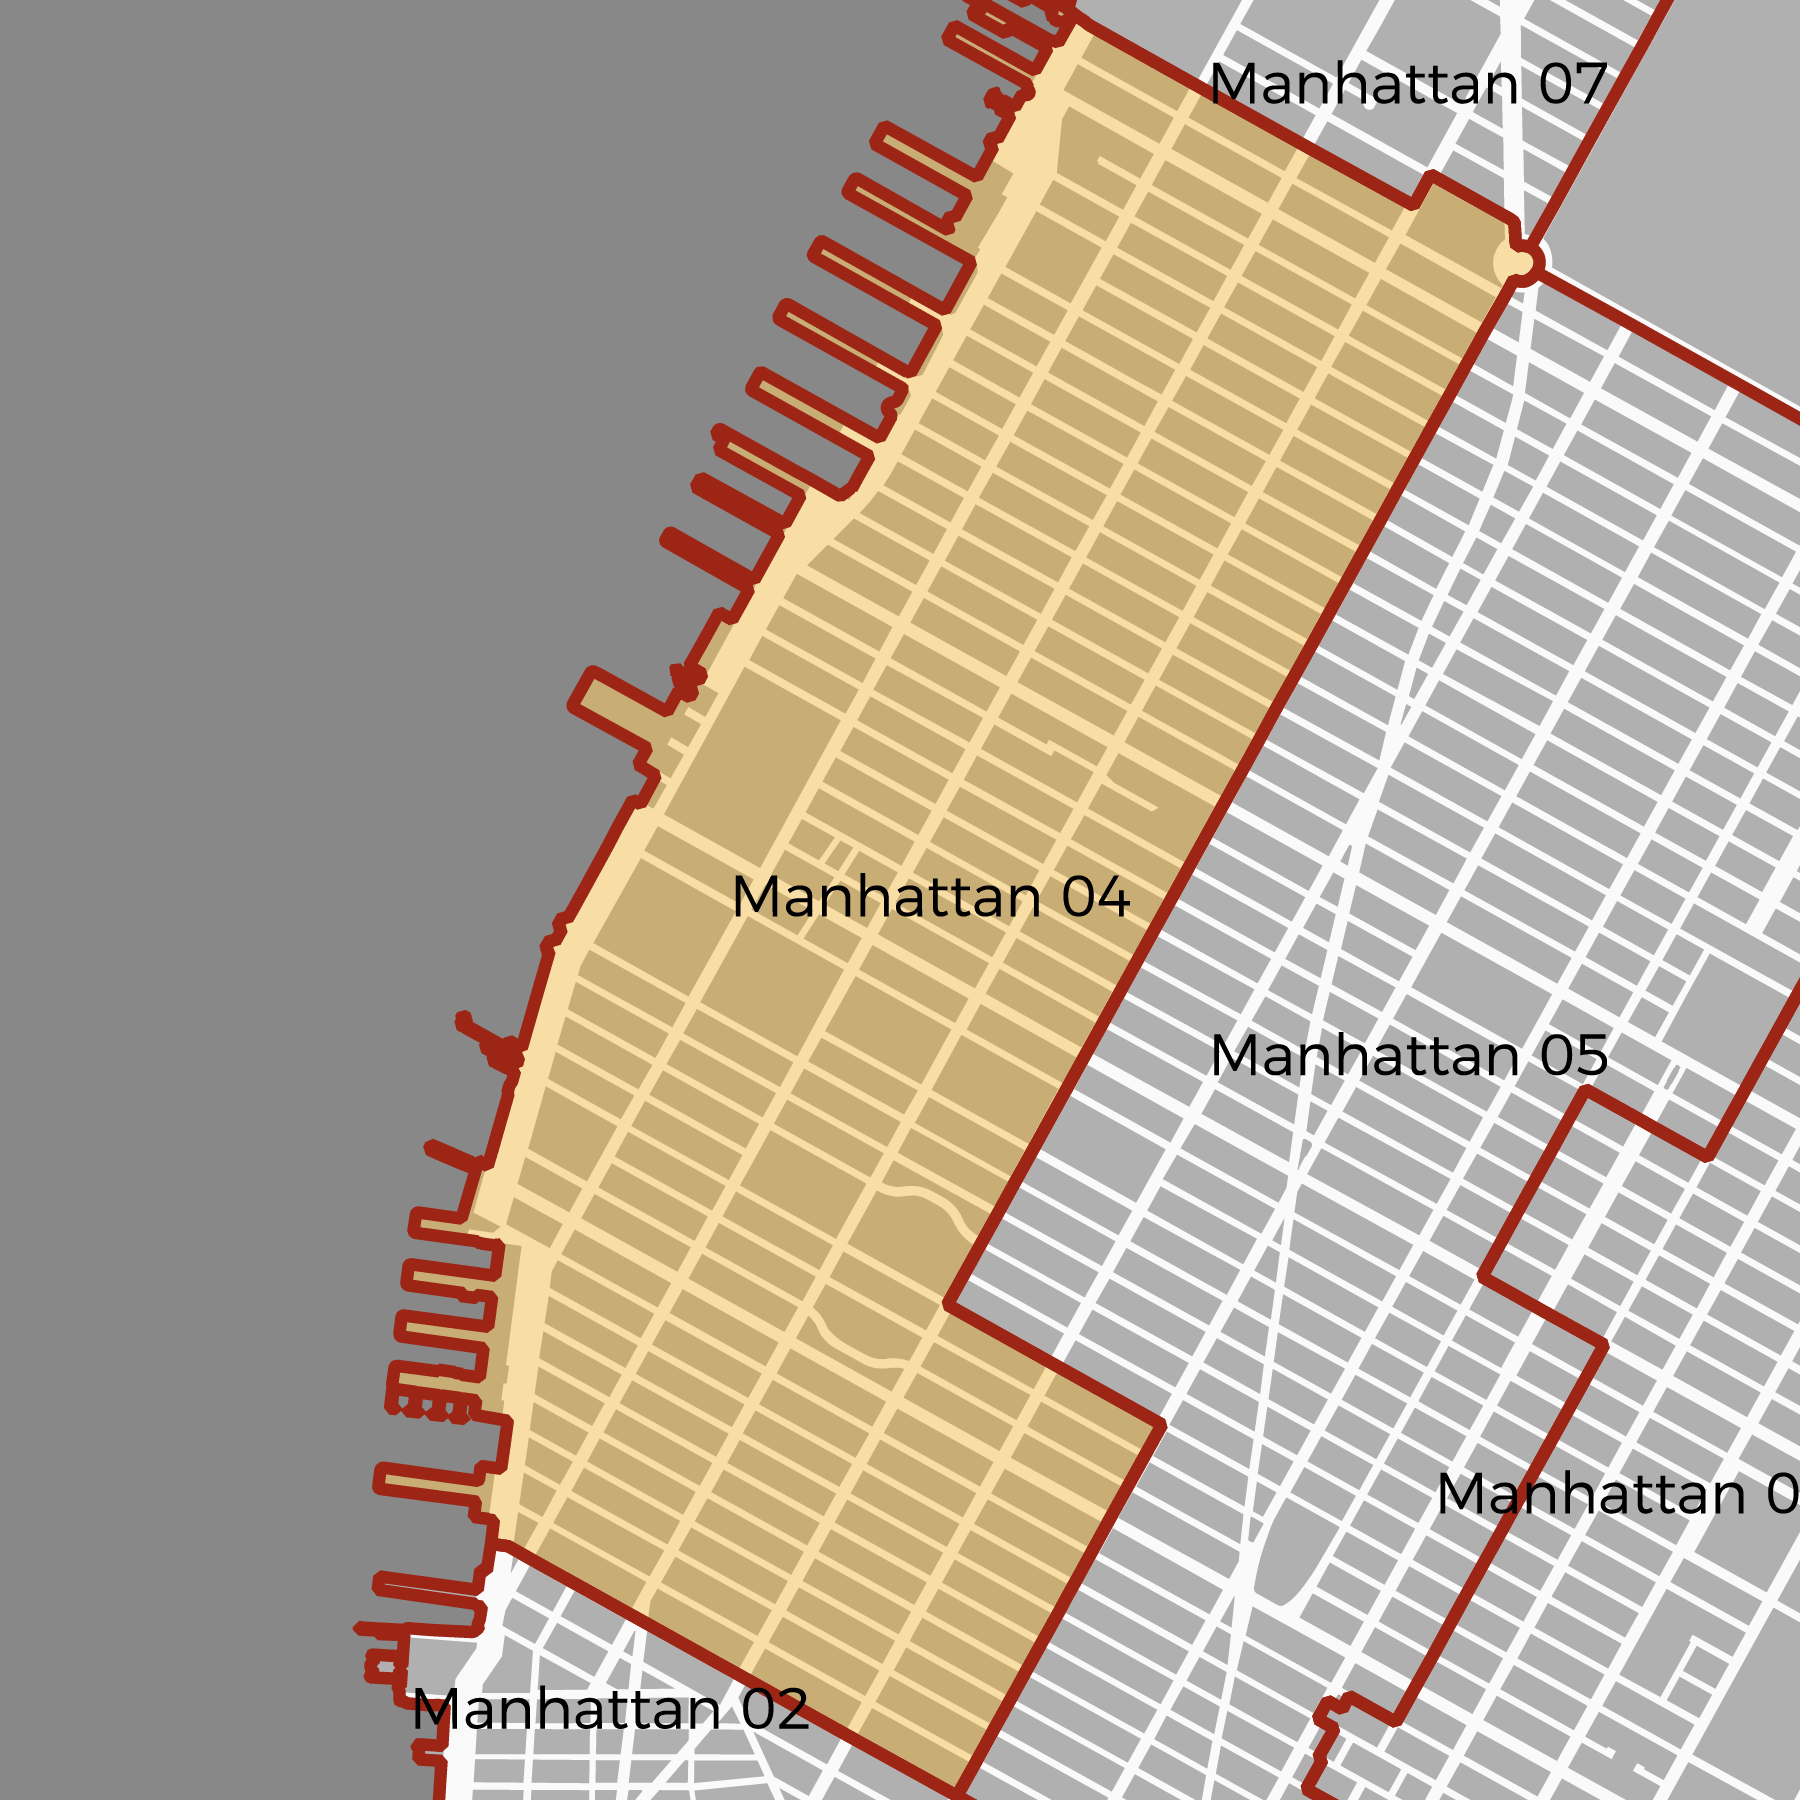 Manhattan Community Board 4